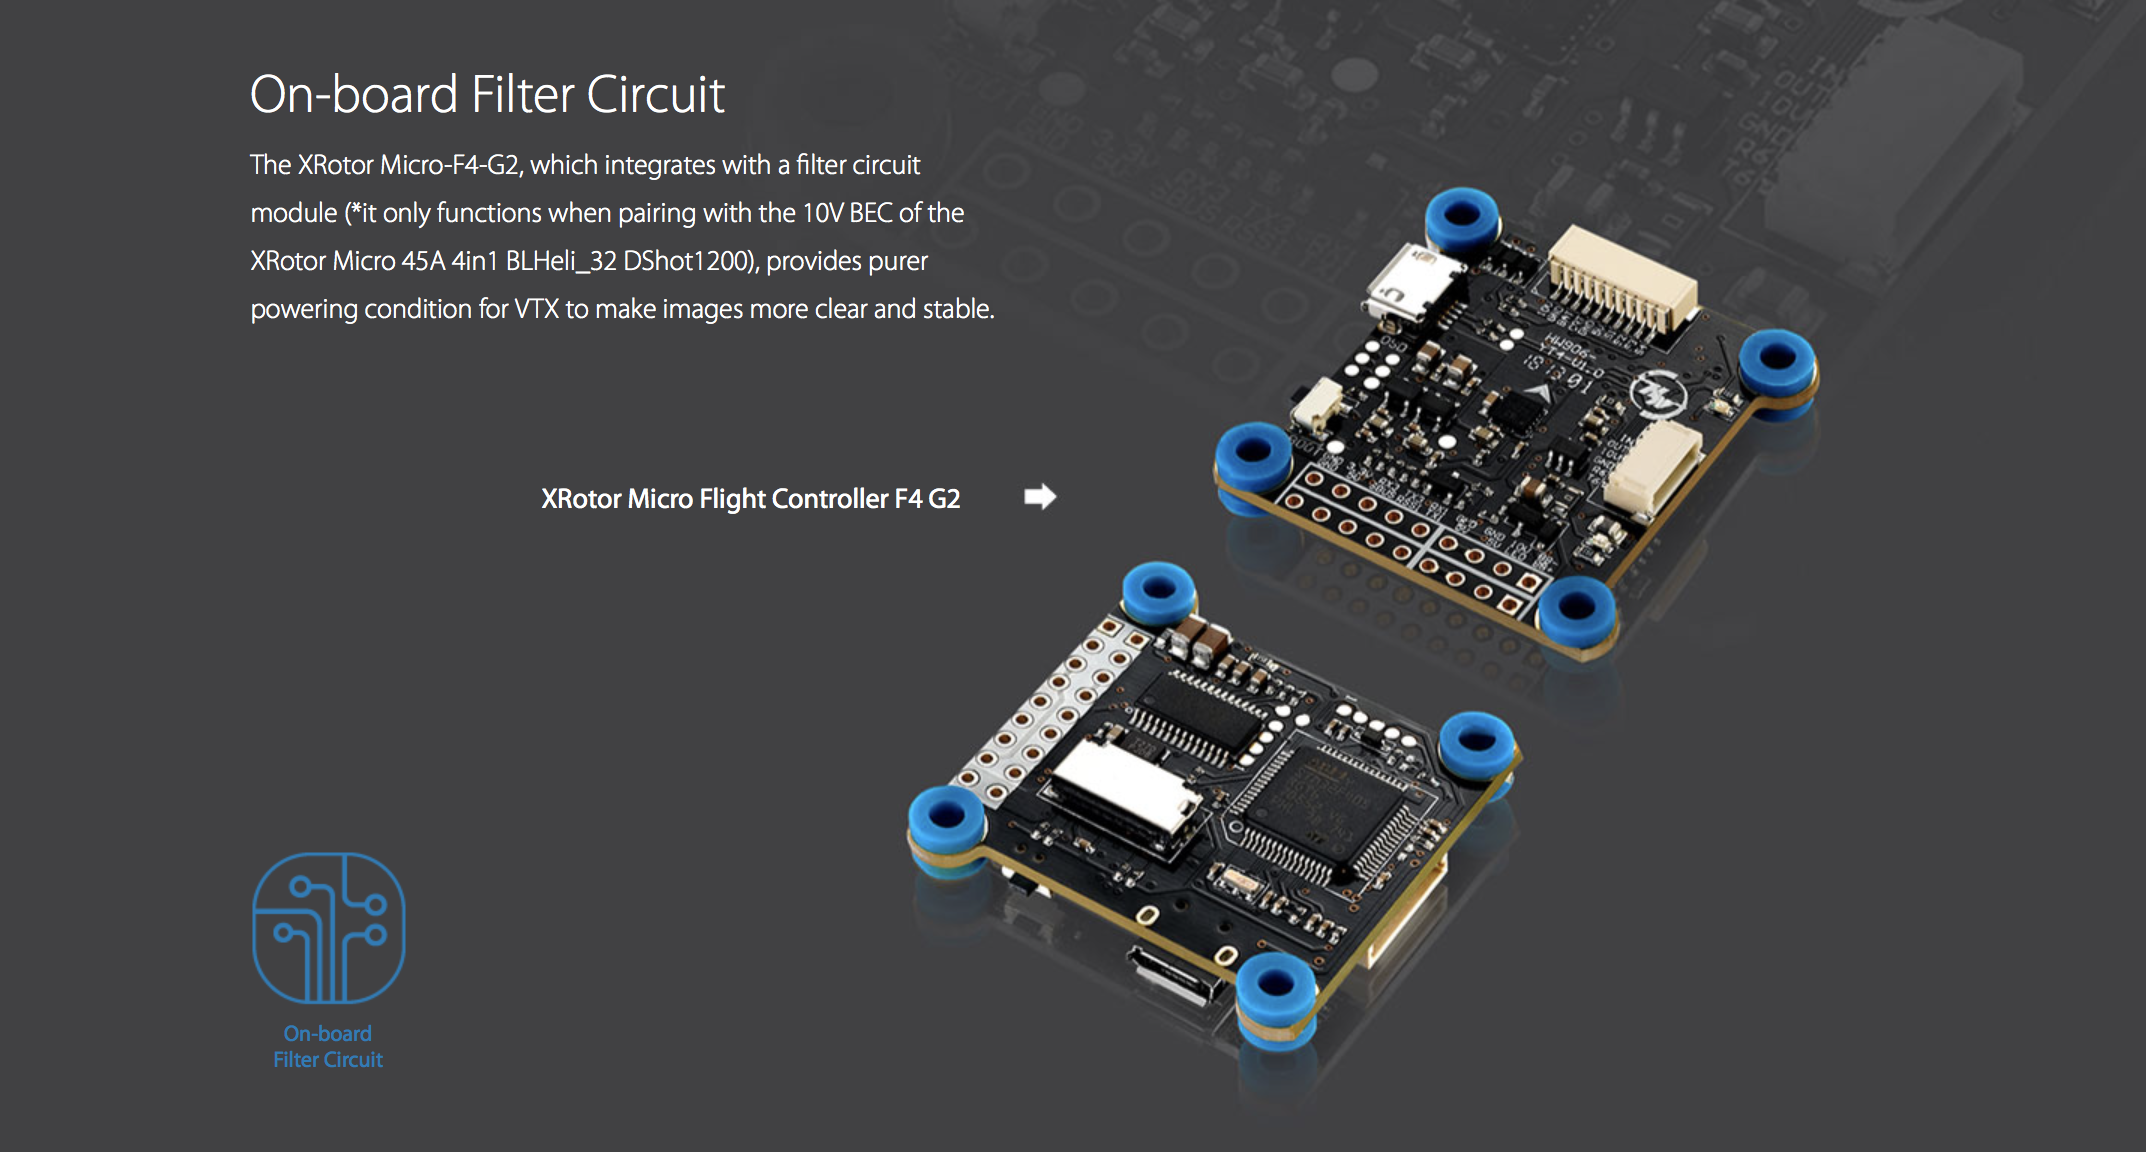 On-board Filter Circuit. The XRotor Micro-F4-G2, which integrates with a filter circuit module (*it only functions when pairing with the 10V BEC of the XRotor Micro 45A 4in1 BLHeli_32 DShot1200), provides purer powering condition for VTX to make images more clear and stable.